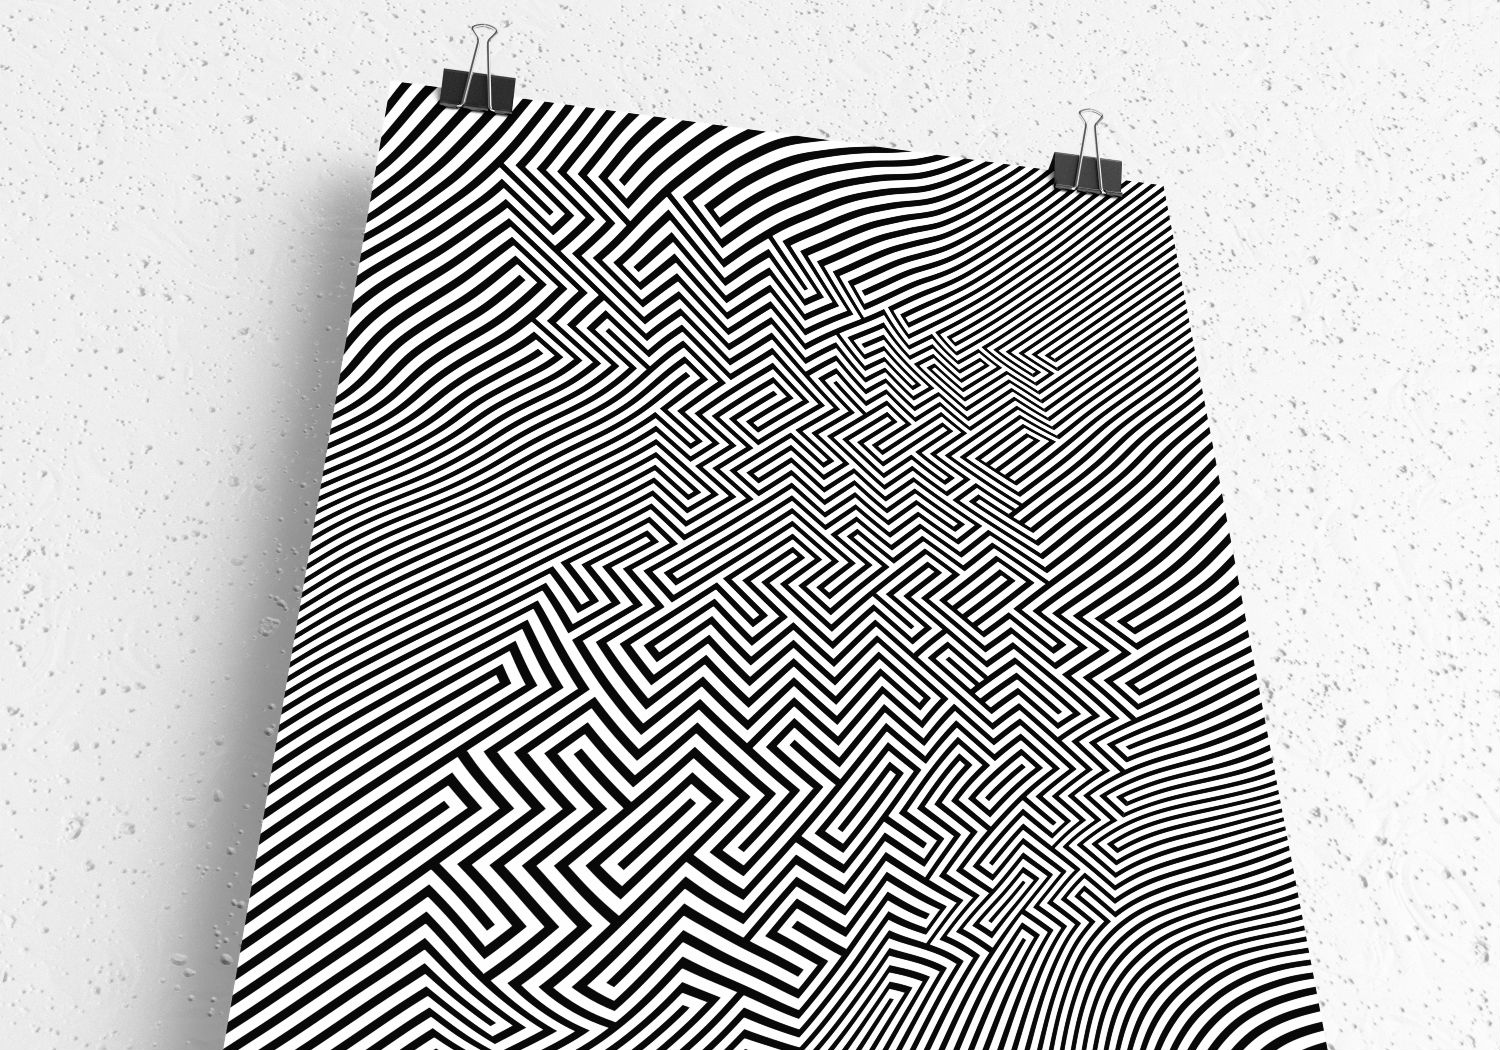 gareth chang graphic art black white illusion line